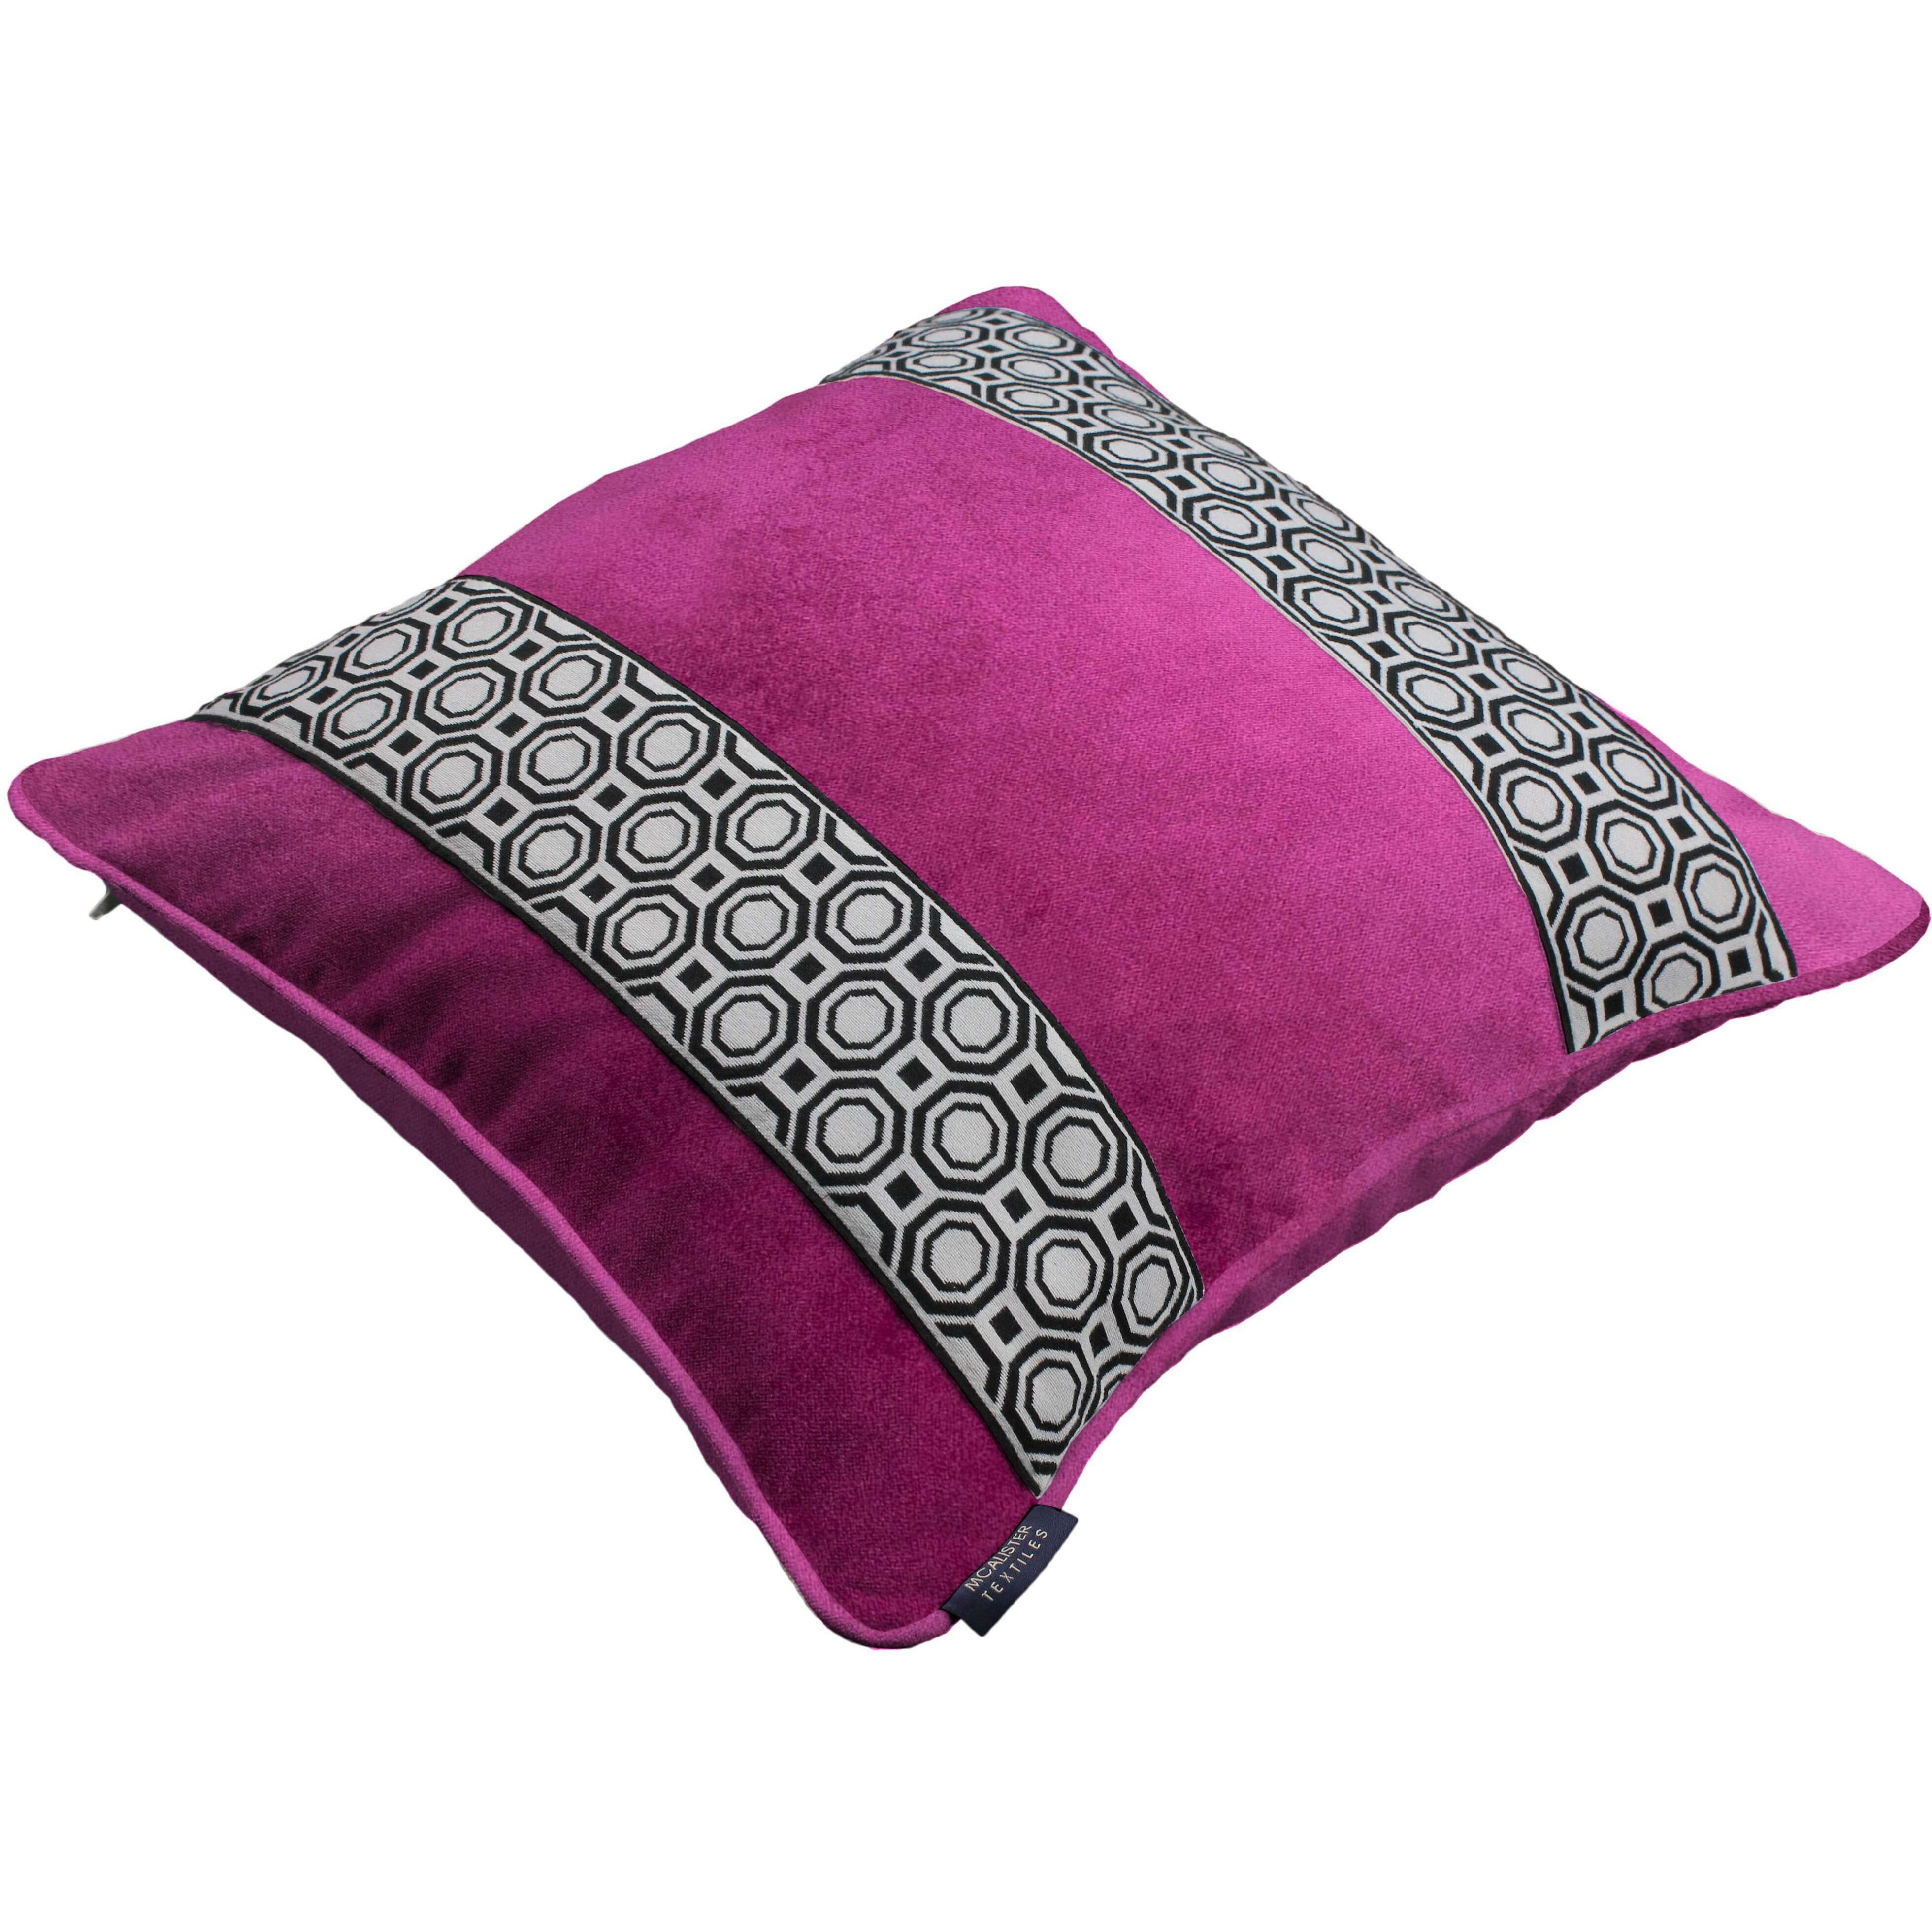 McAlister Textiles Cancun Striped Fuchsia Pink Velvet Cushion Cushions and Covers